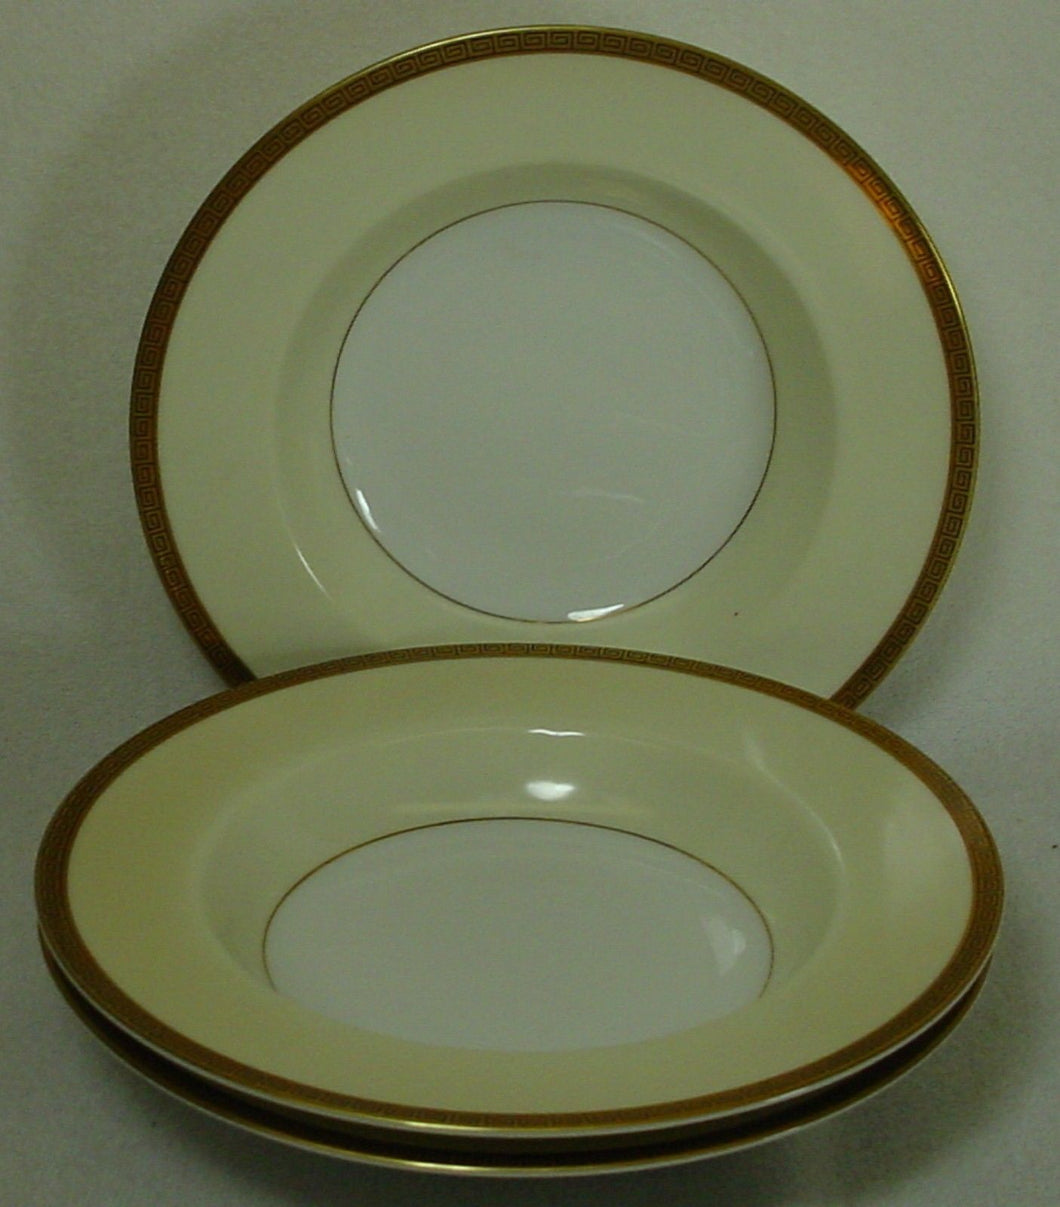 NORITAKE china GRACEWOOD 4984 pattern Soup or Salad Bowl - Set of Three @ 8-1/4